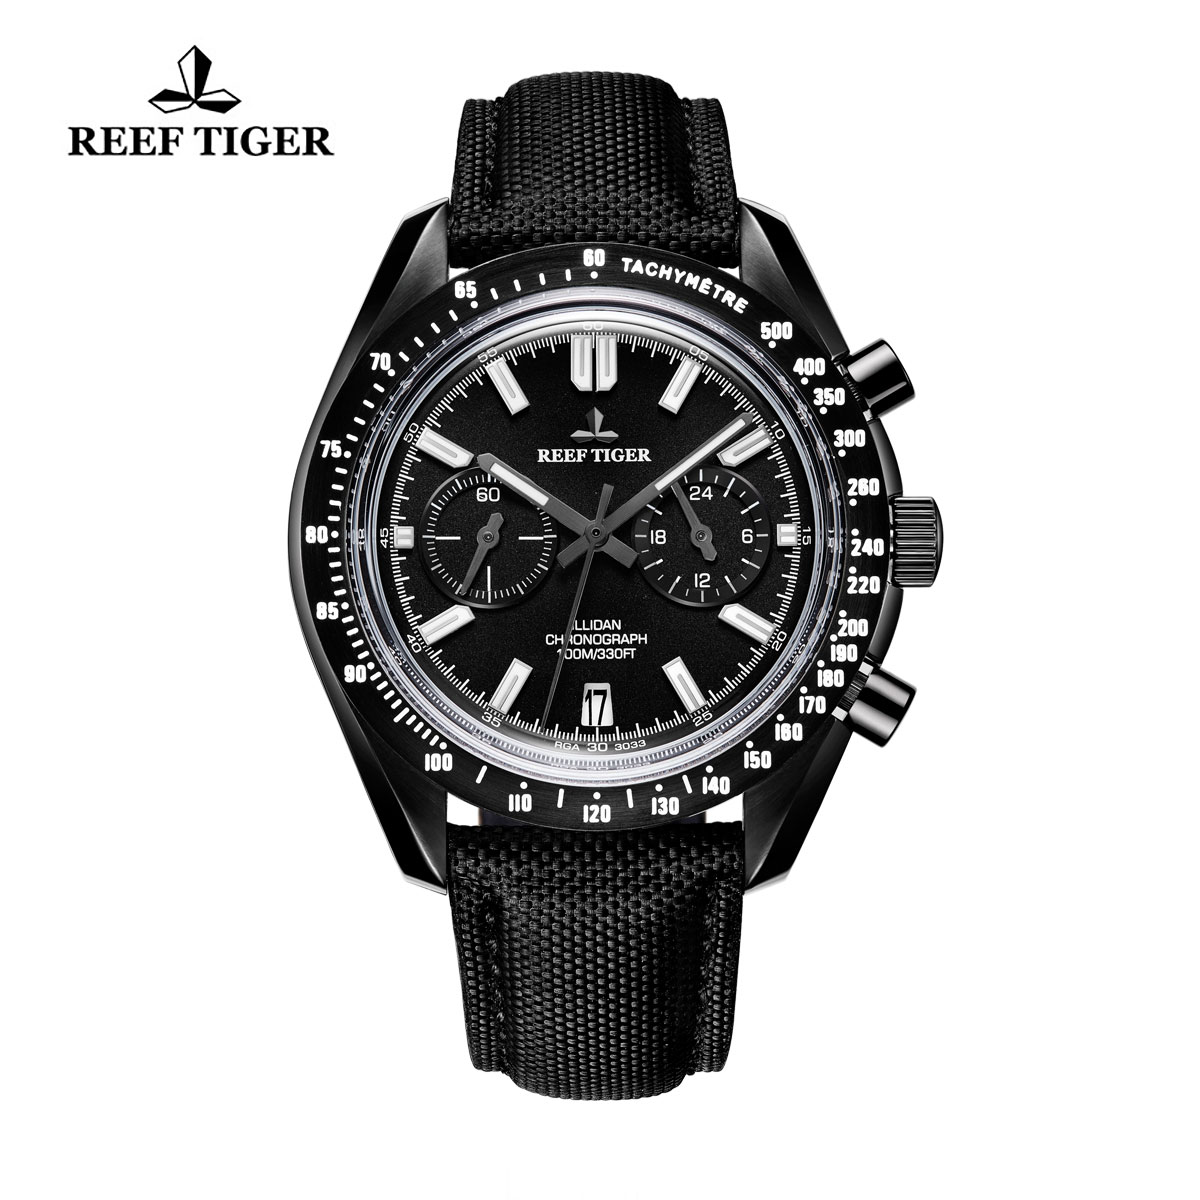 Reef Tiger Illidan Quartz Watches Chronograph PVD Case Black Dial Leather Strap Watches RGA3033-BBB